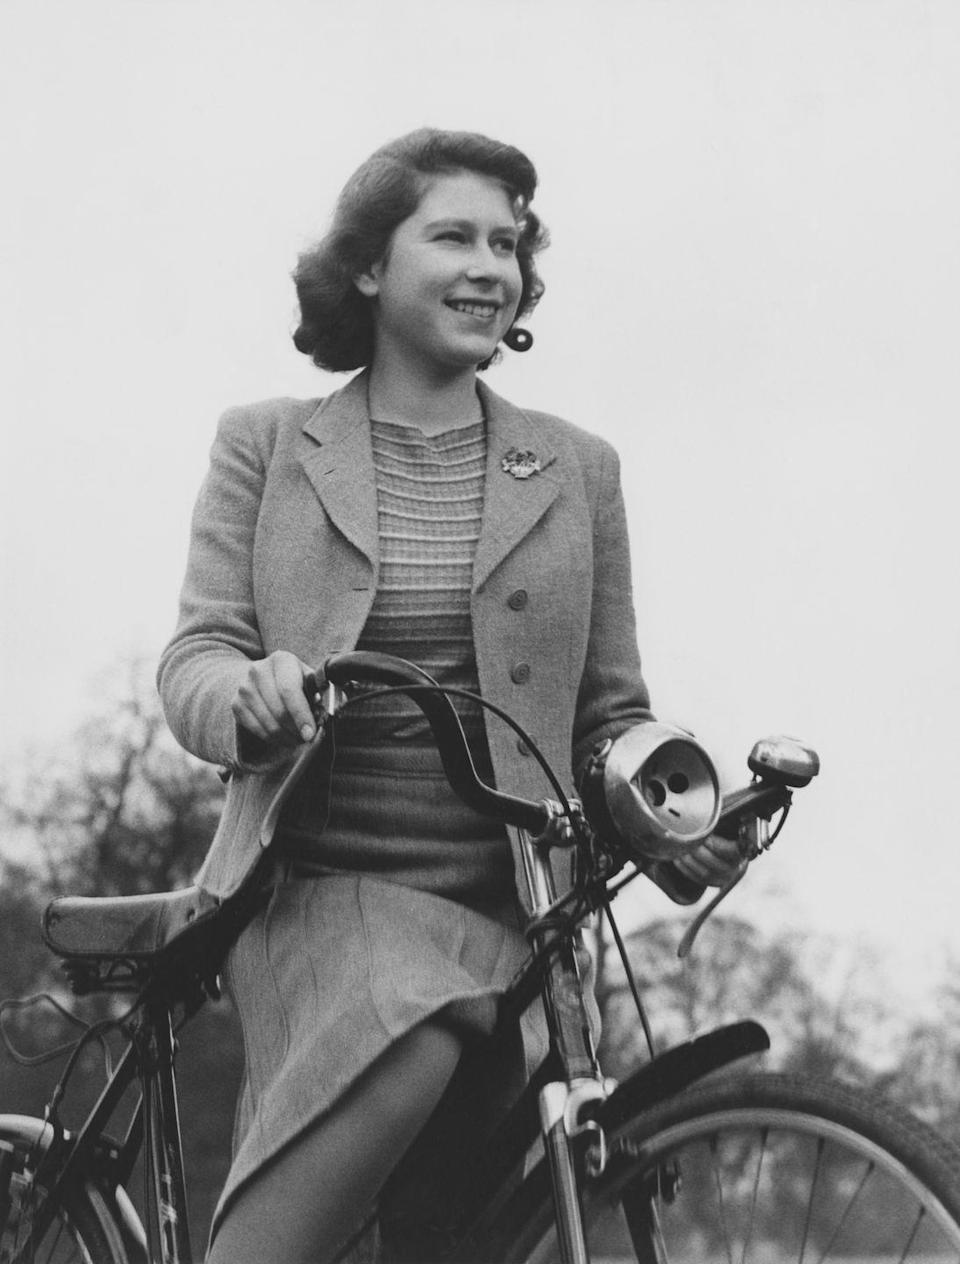 <p>Here, Queen Elizabeth wore a tweed blazer while cycling in Windsor in 1942.</p>